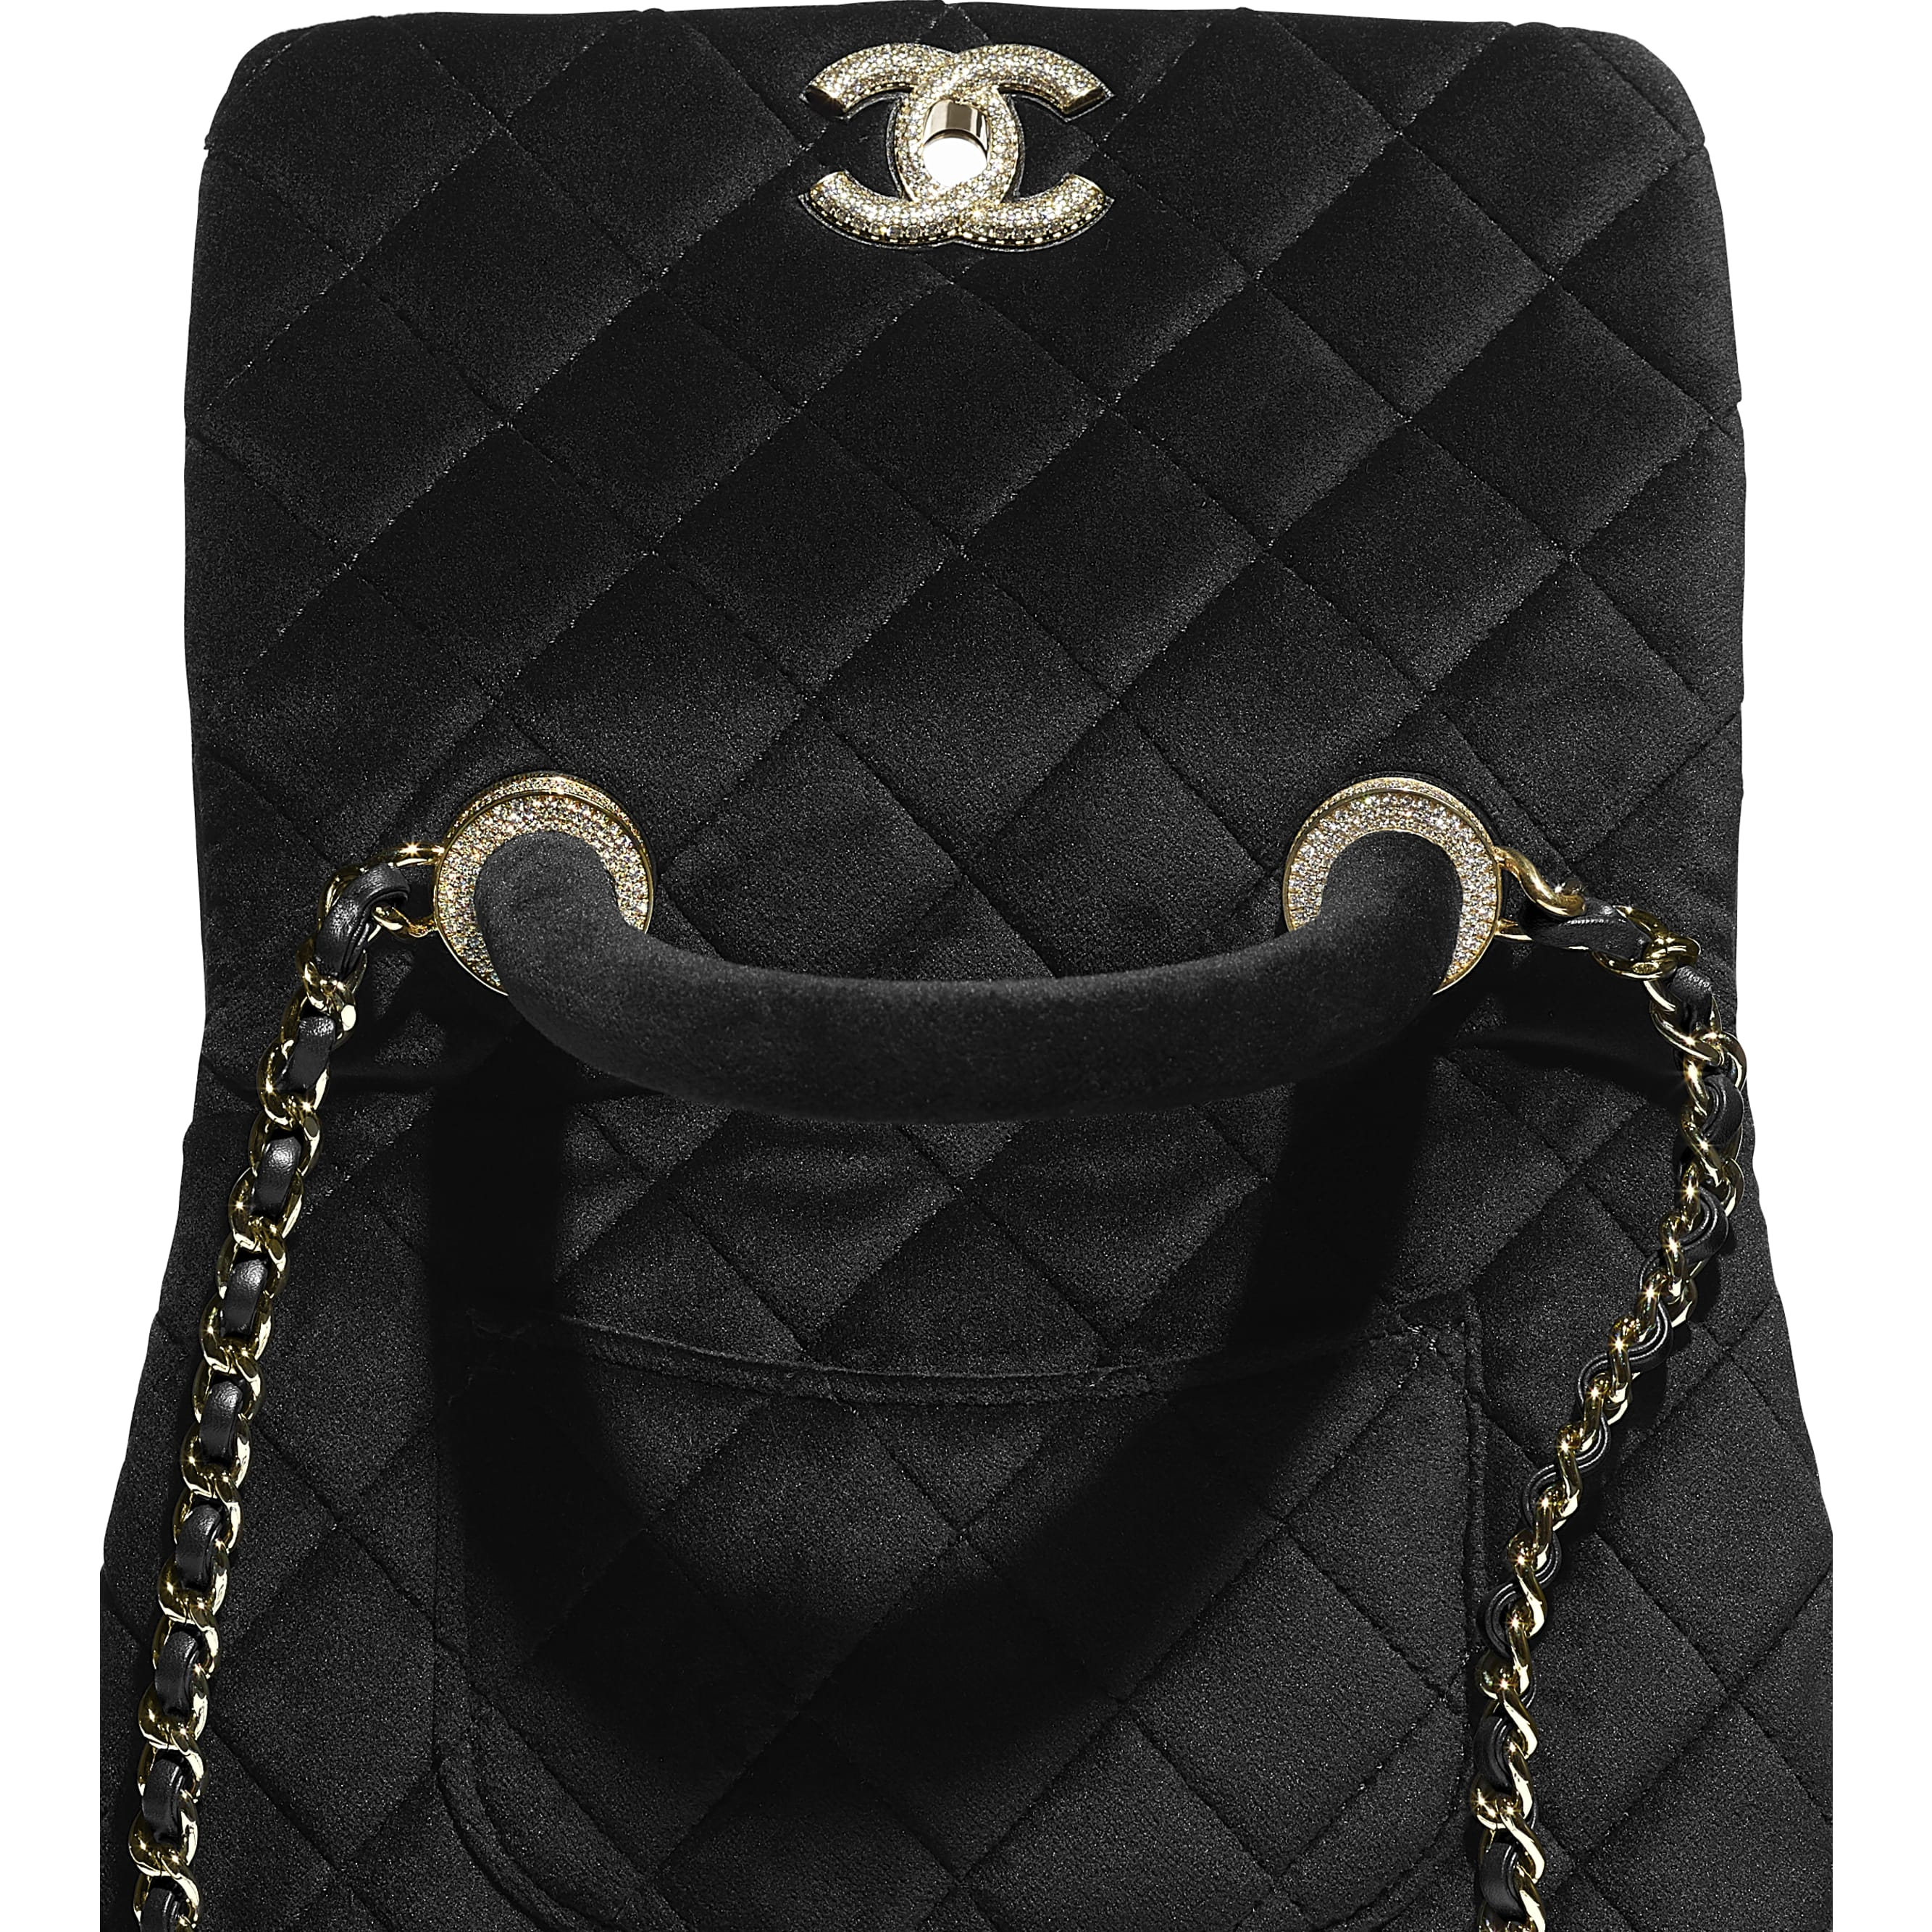 Mini Flap Bag with Top Handle - Black - Velvet, Diamanté & Gold-Tone Metal - CHANEL - Extra view - see standard sized version